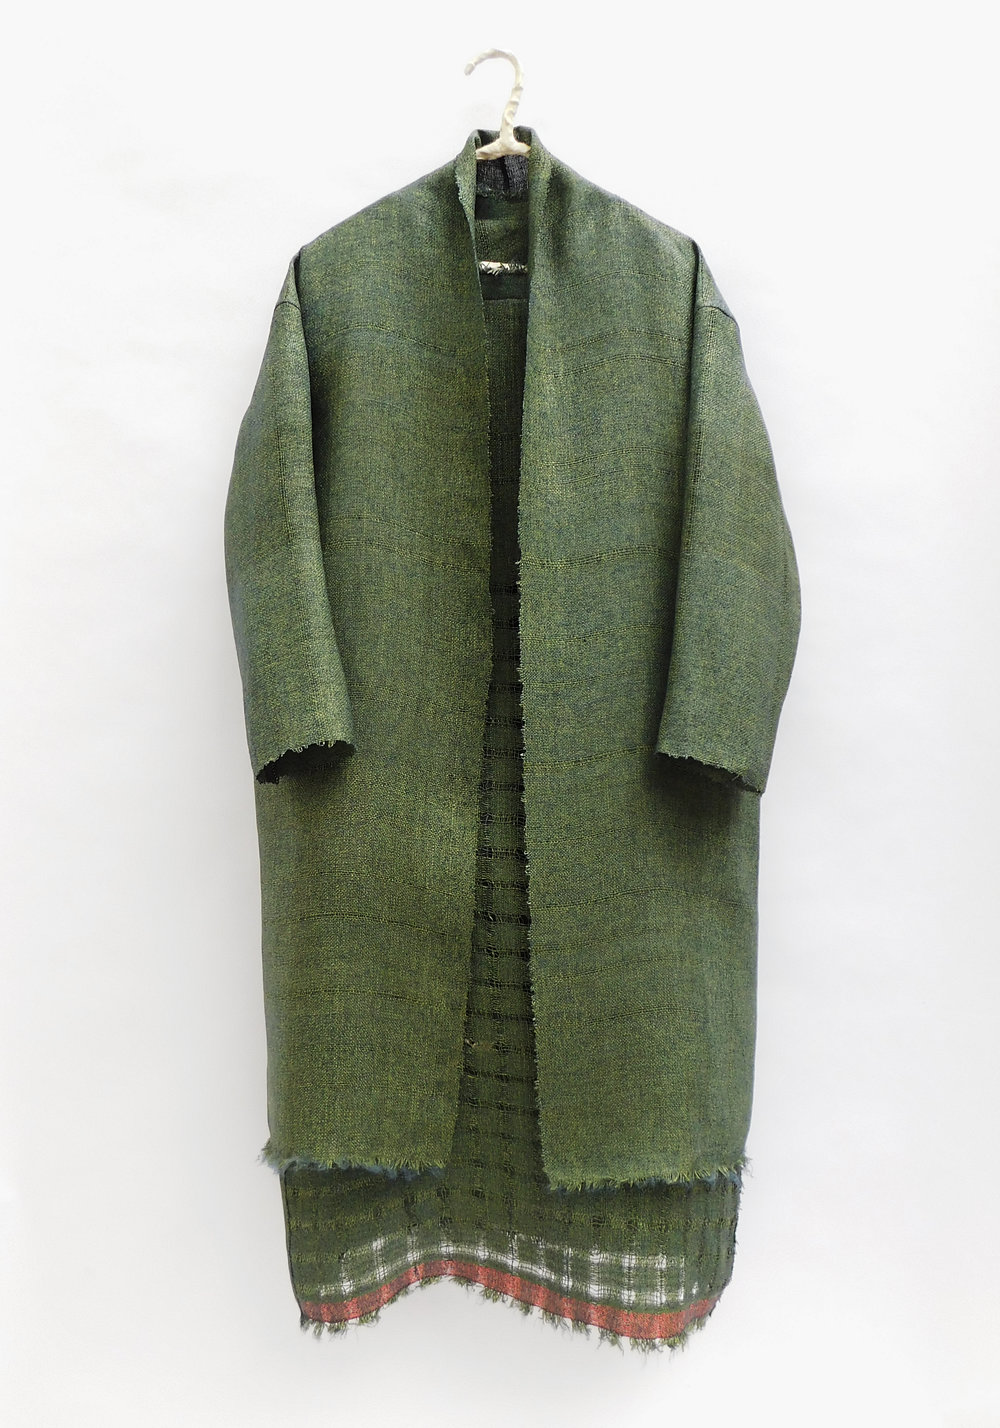 AR_WoodburnDress_WillowCoat_01.jpg